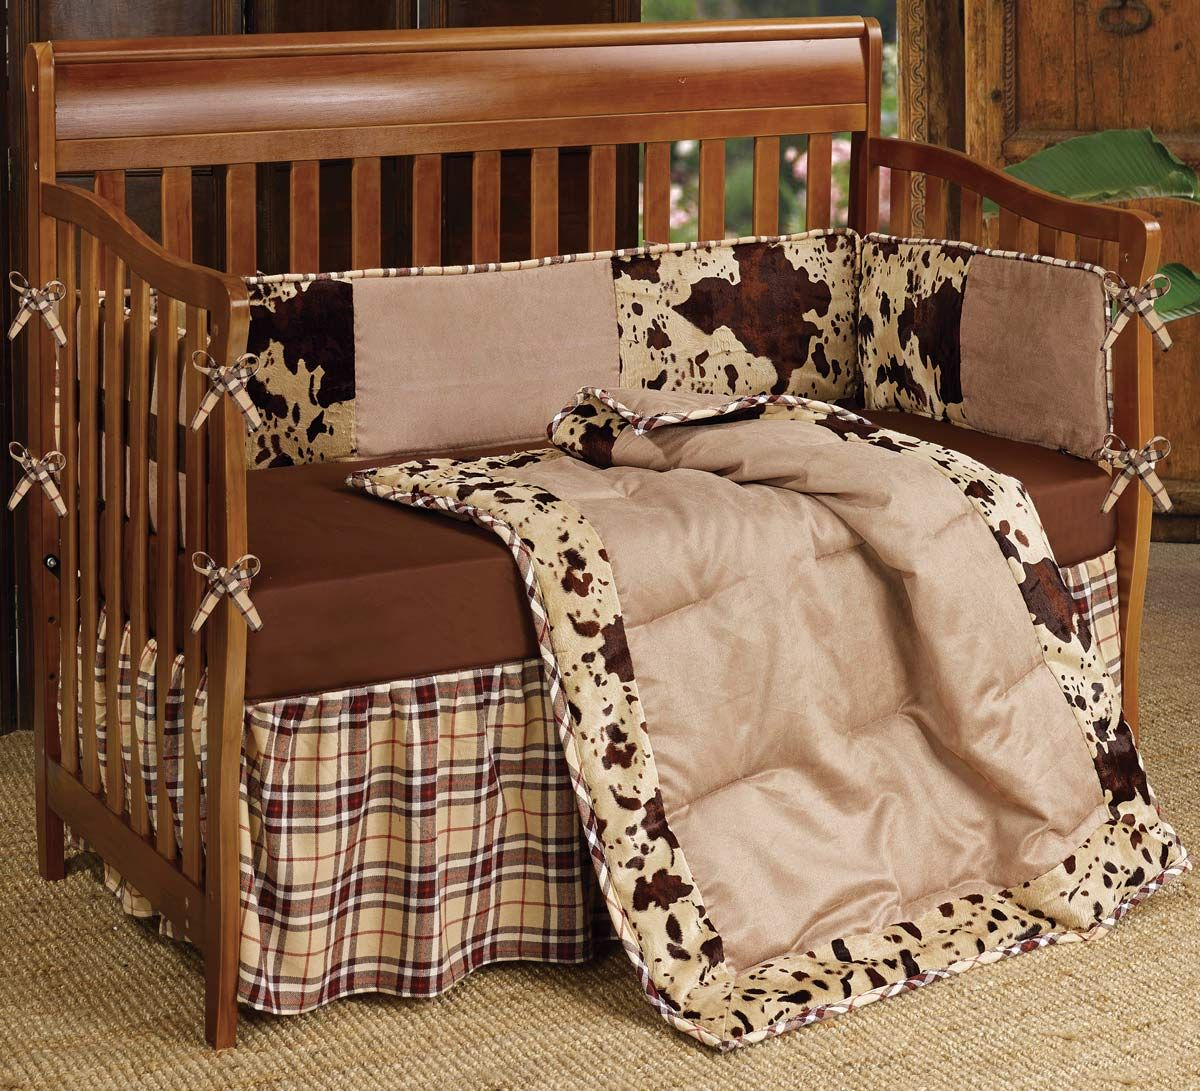 Baby cribs what to look for - Visit Lone Star Western Decor Right Now And Look At Our Range Of Western Bedding Such As This Baby Cowhide Crib Bedding Set